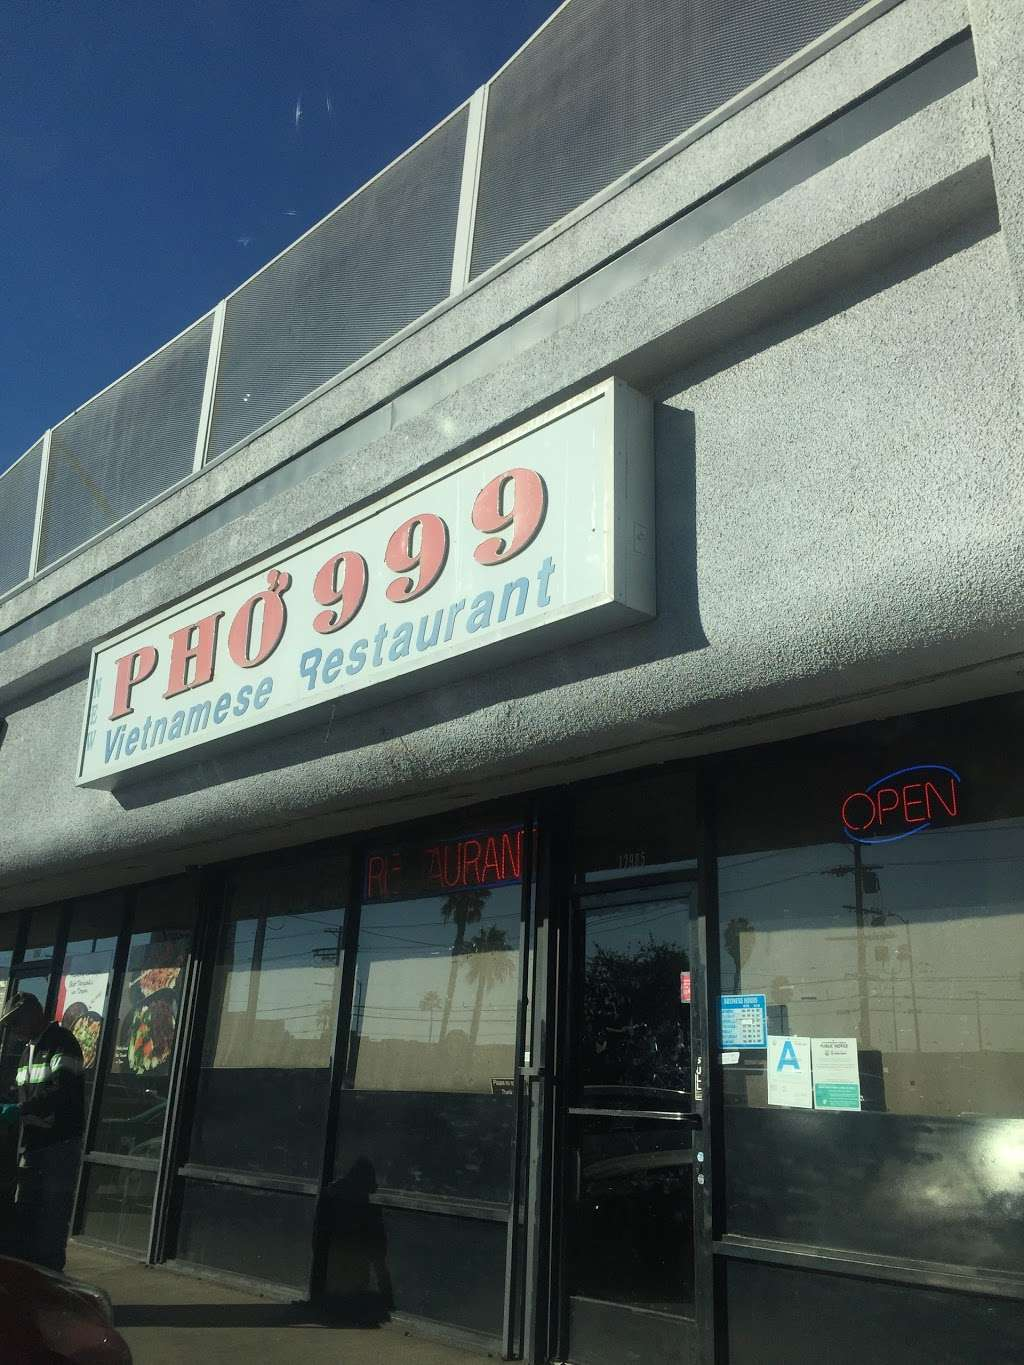 New Pho 999 - restaurant  | Photo 3 of 10 | Address: 12905 Sherman Way, North Hollywood, CA 91605, USA | Phone: (818) 982-9370